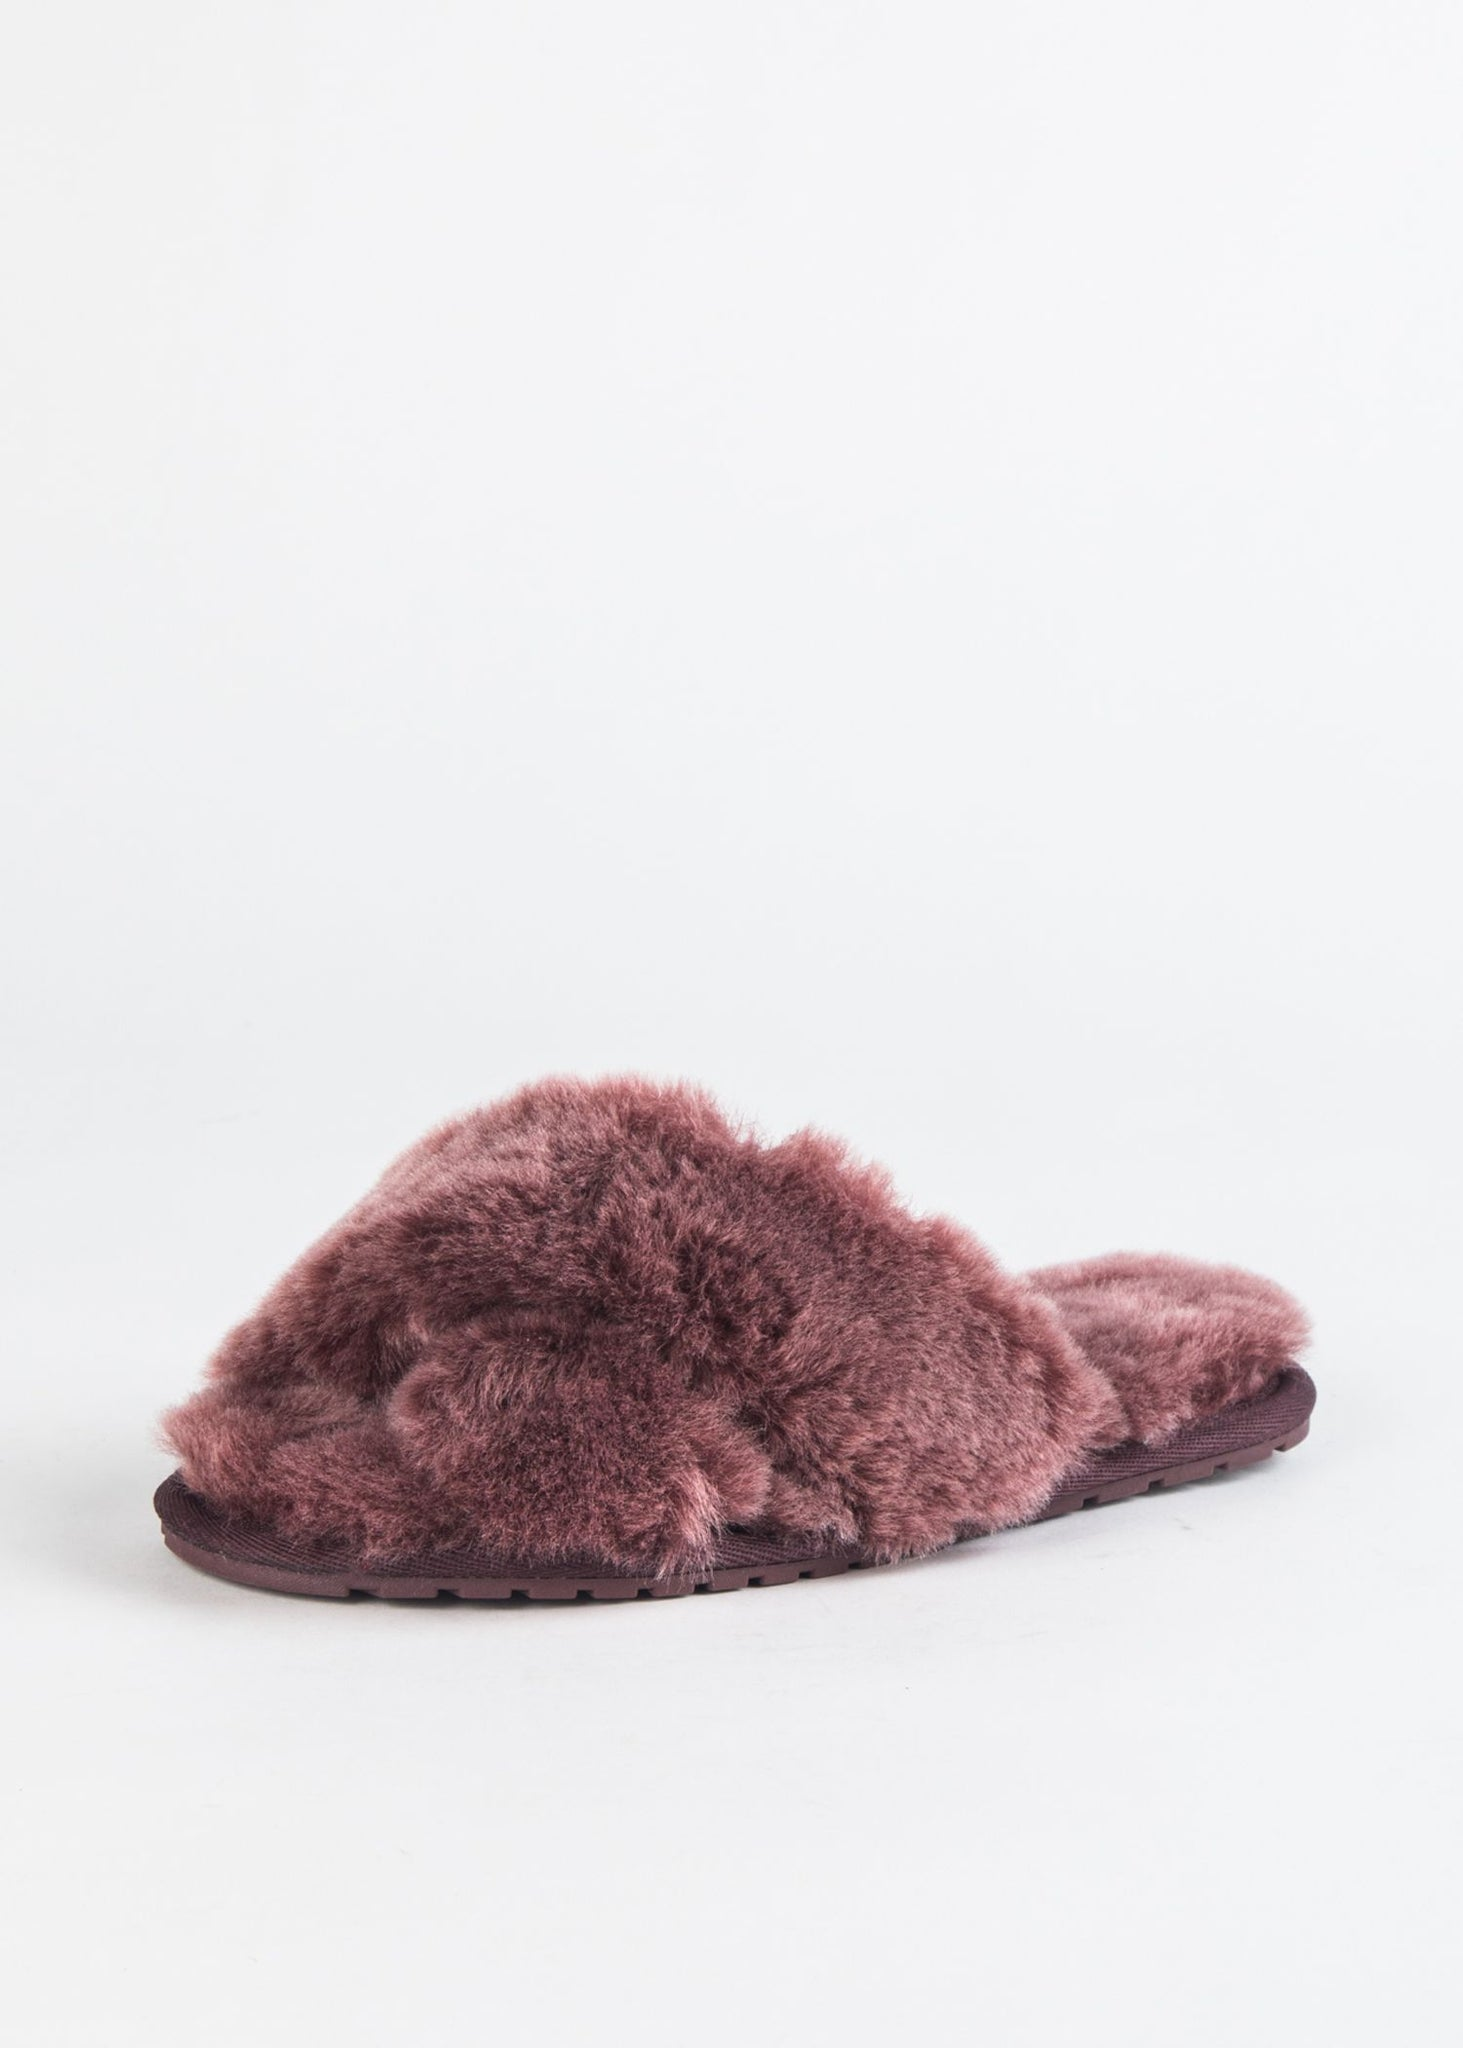 Mayberry-Frost Slipper